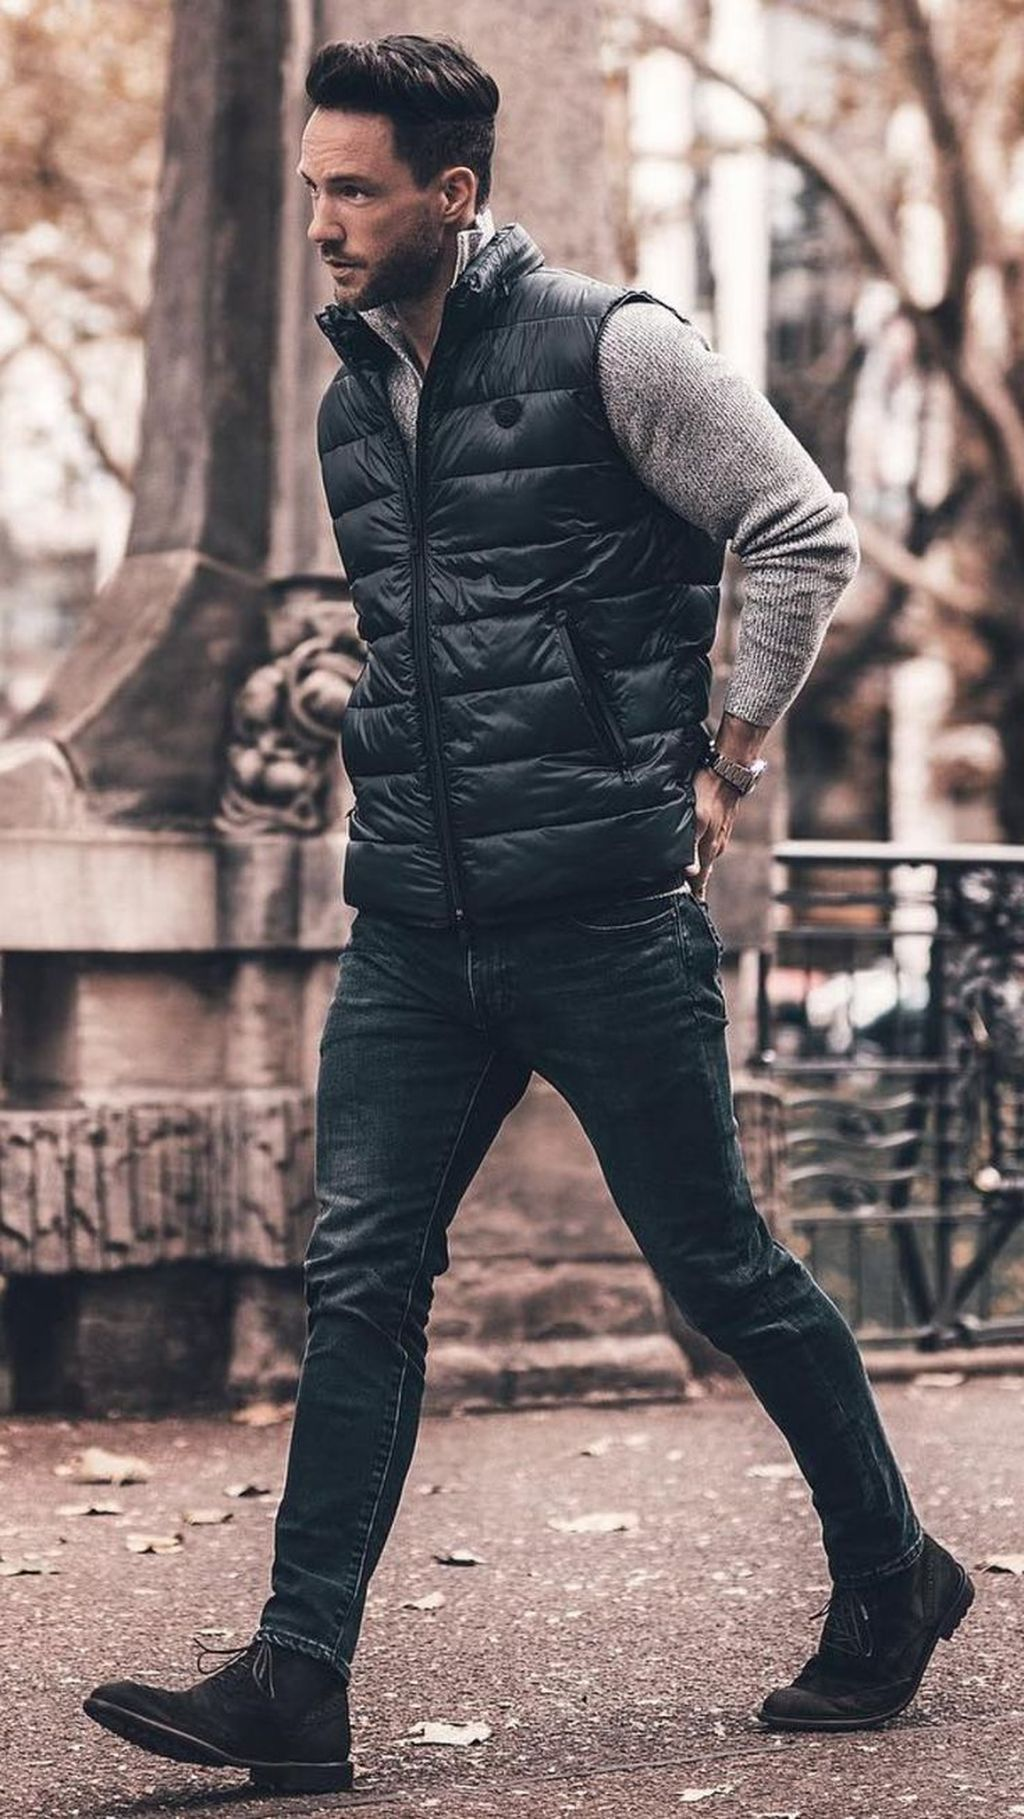 Best 6 Winter Streetwear Outfit Combinations: 20+ Popular Outfits Ideas For Men That Looks Cool